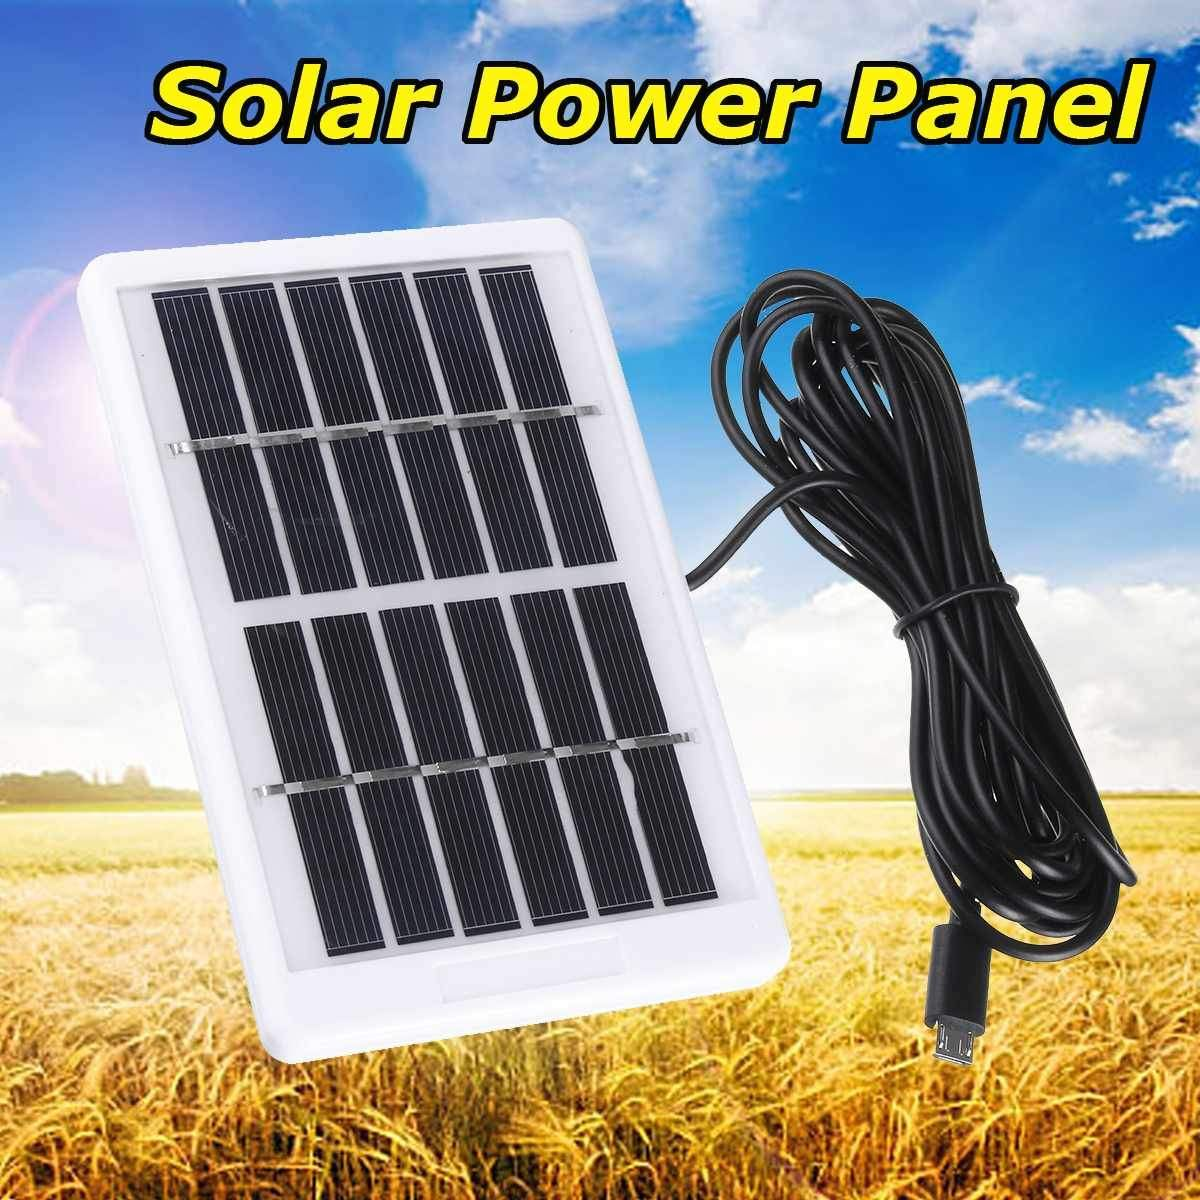 Solar Panel Mini Solar System Diy For Battery Cell Phone Chargers Portable Solar Cell For Multi Function Househol Cell Phone Charger Portable Solar Power Solar